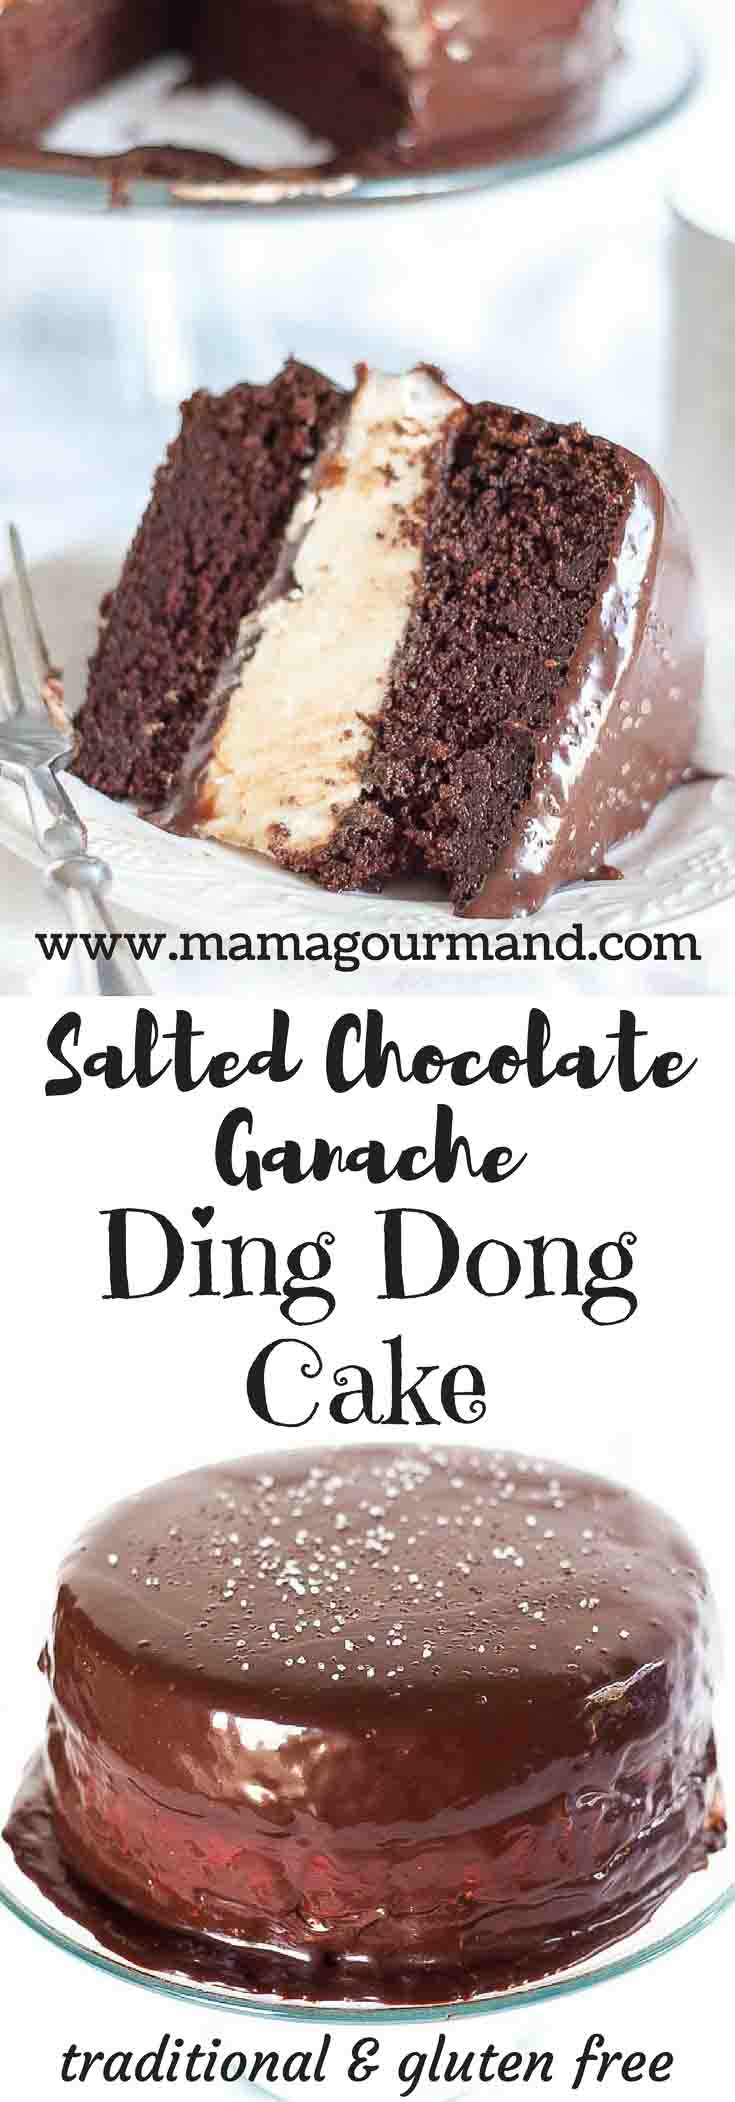 A super sized Ding Dong Cake at it's best! Salted Chocolate Ganache Ding Dong Cake has moist chocolate cake, light and fluffy filling, and salted ganache. http://www.mamagourmand.com